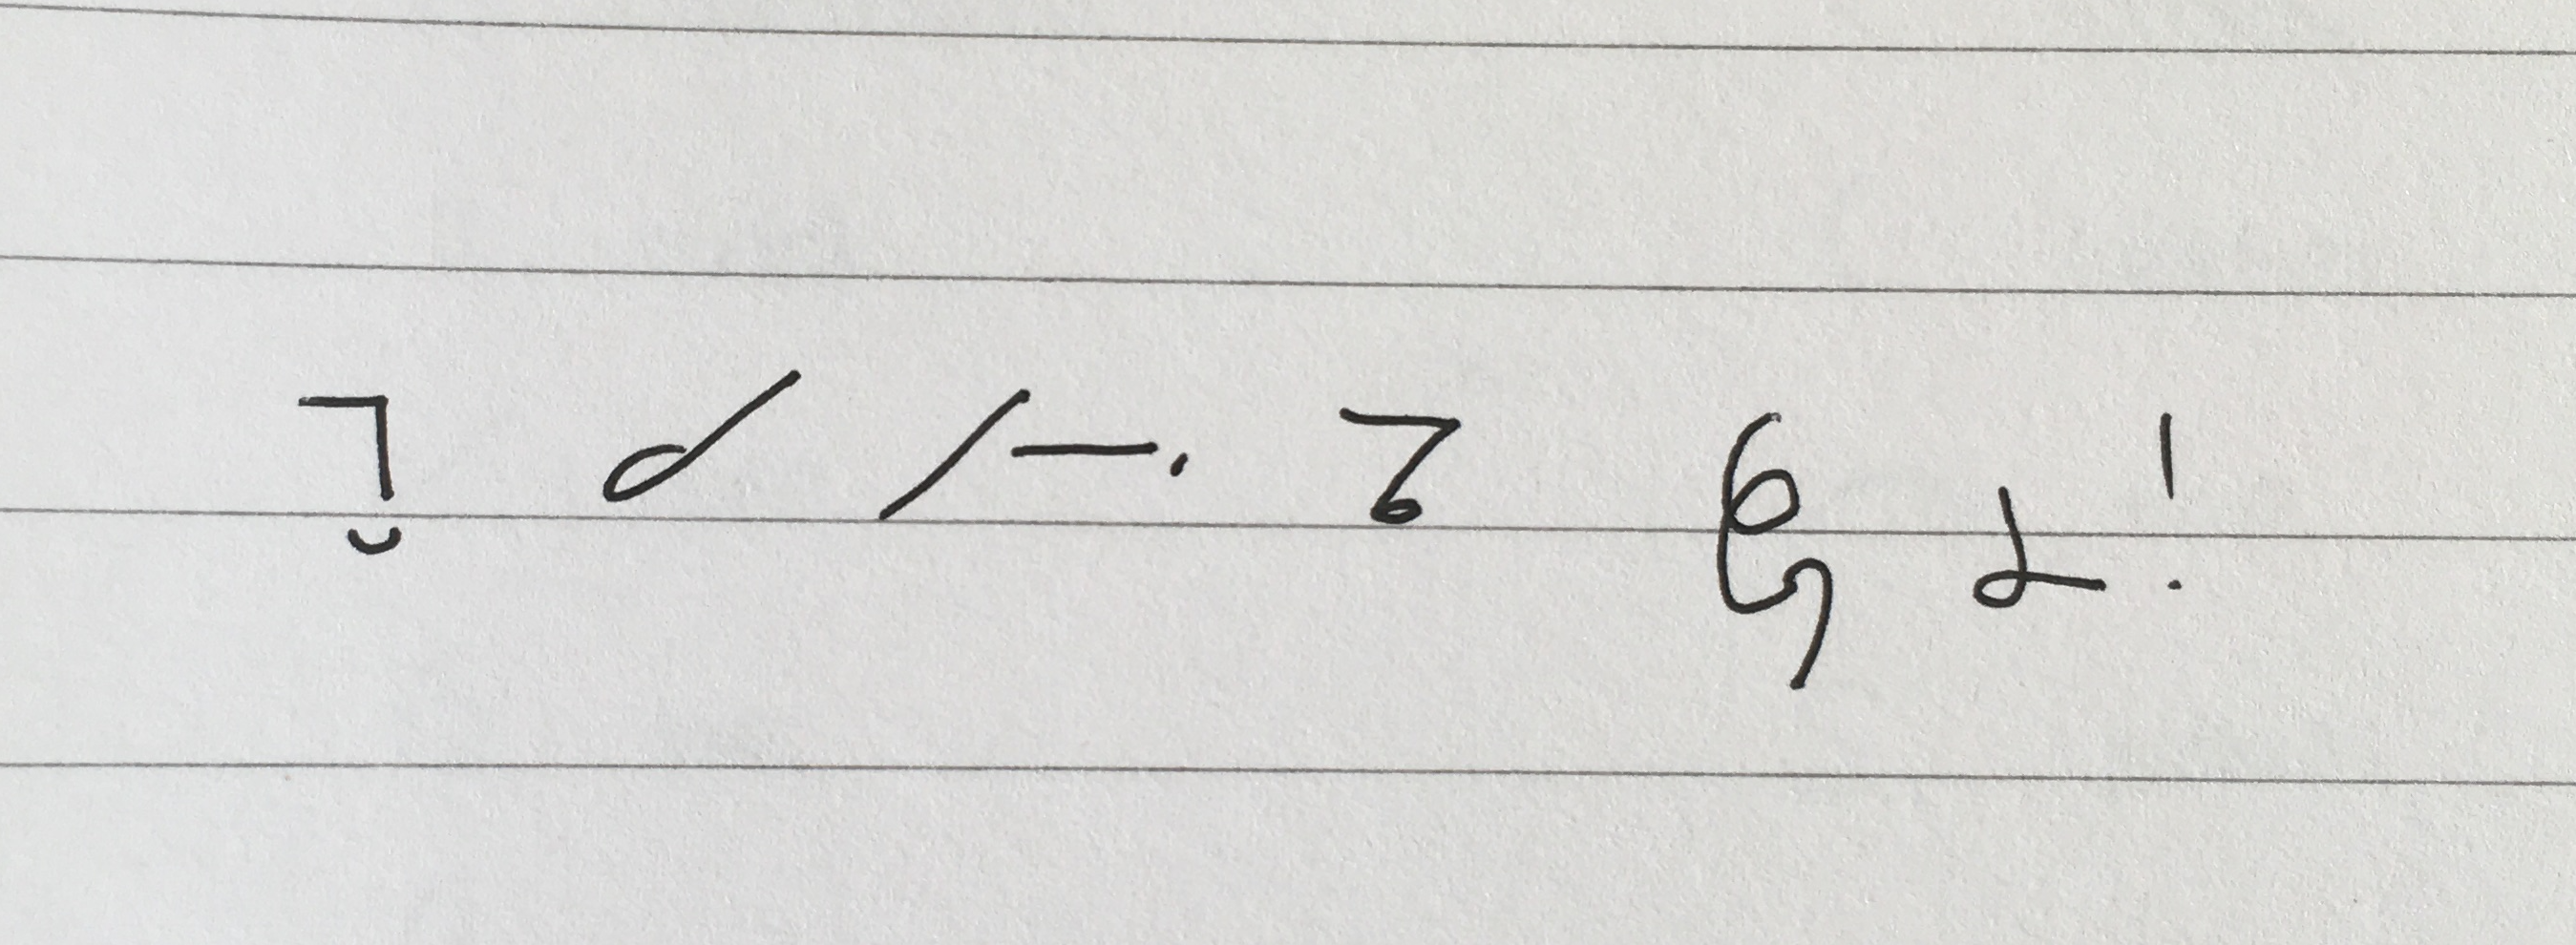 Simple Teeline shorthand phrase